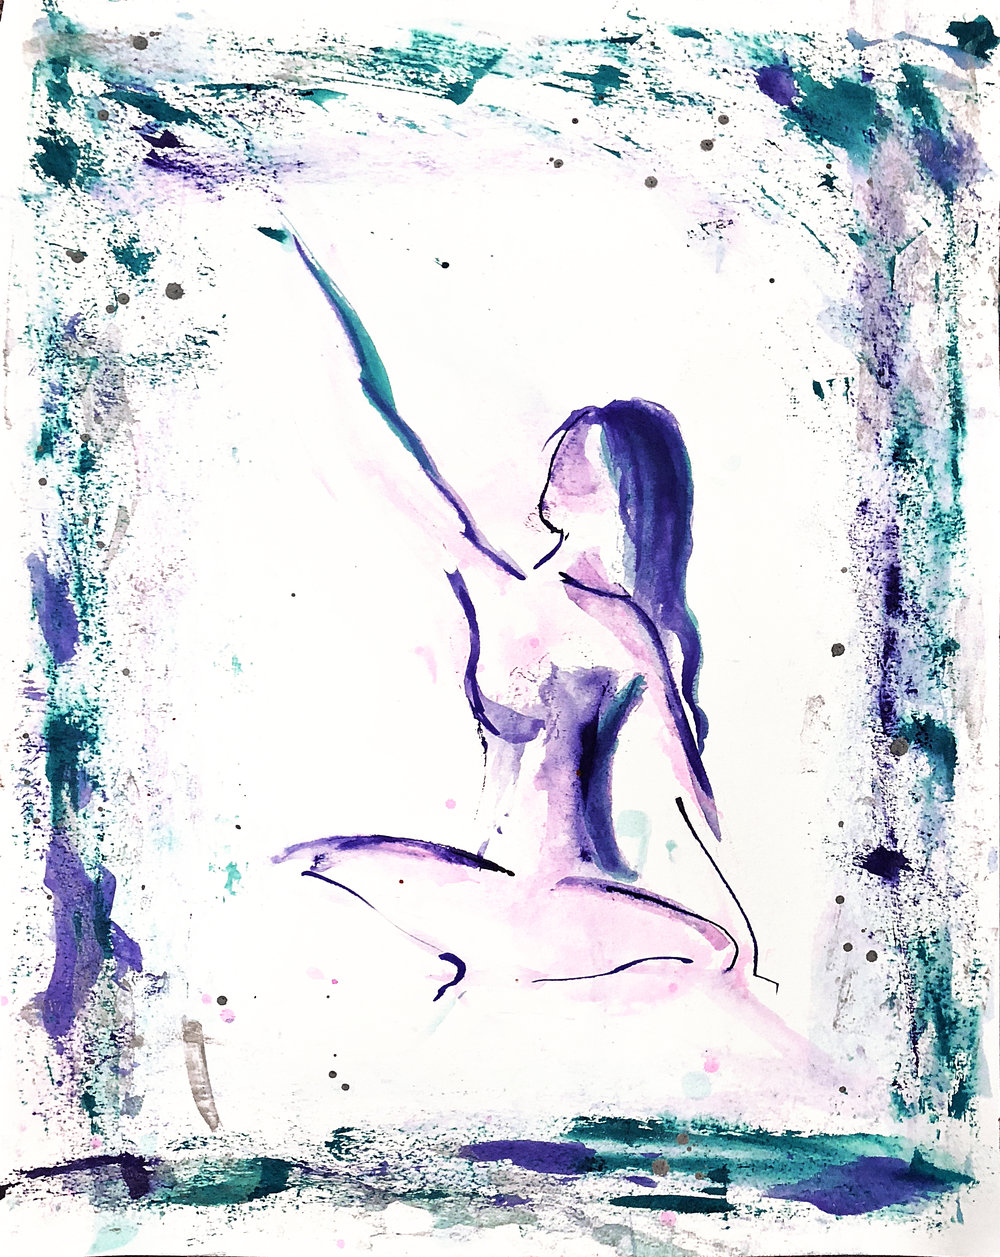 Watercolor on paper, painted with palette knives, yoga pose baddakonasana.